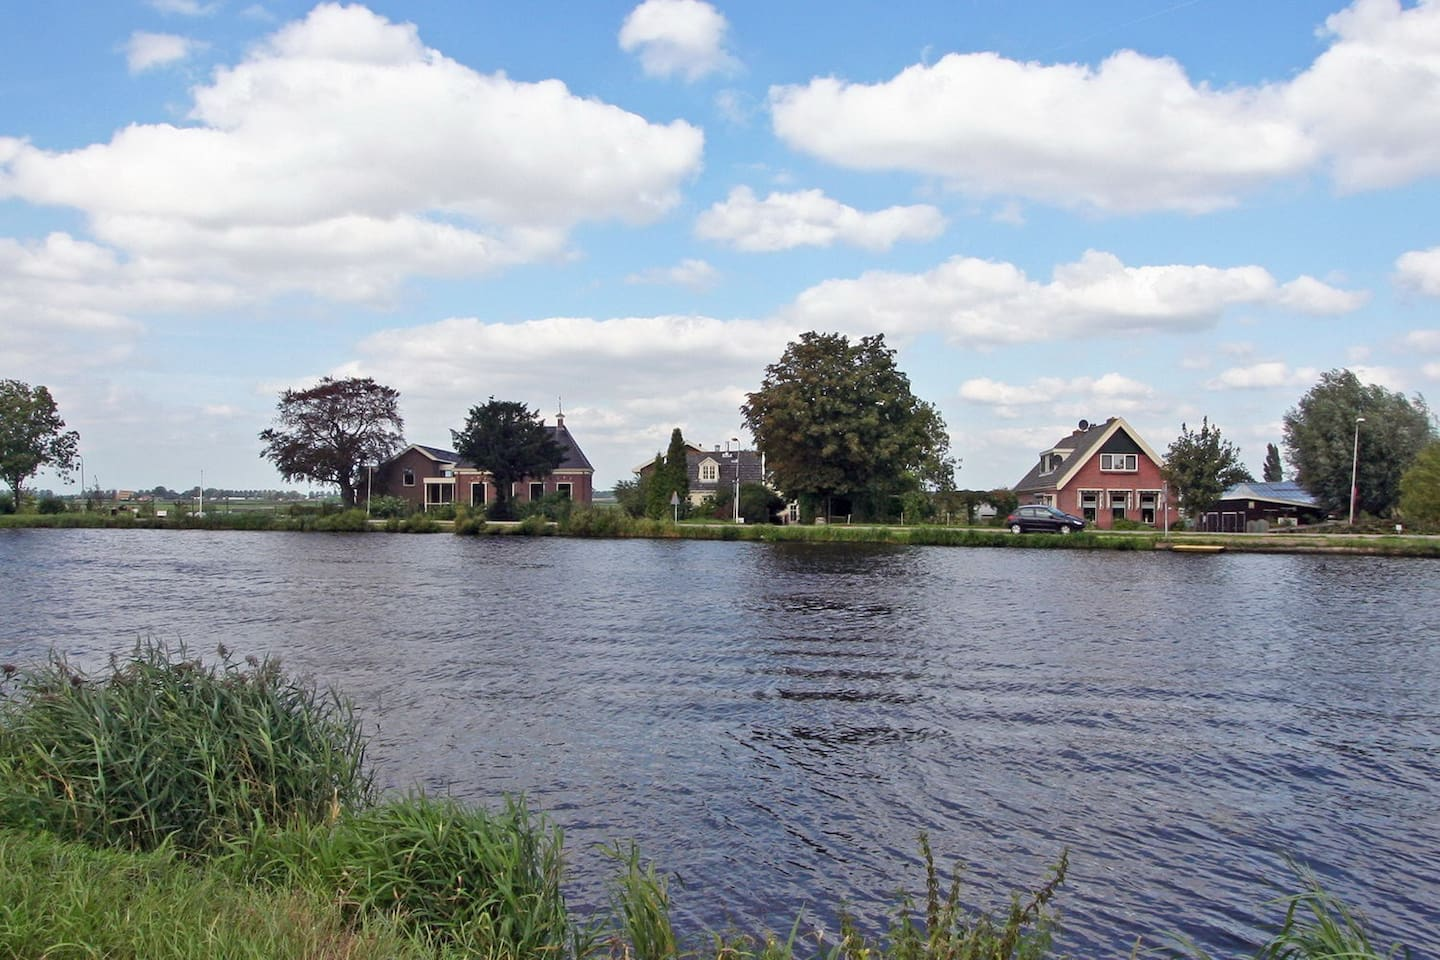 The house in the middle is where you find peace and quiet on the Amstel River, just 10 minutes from Amsterdam